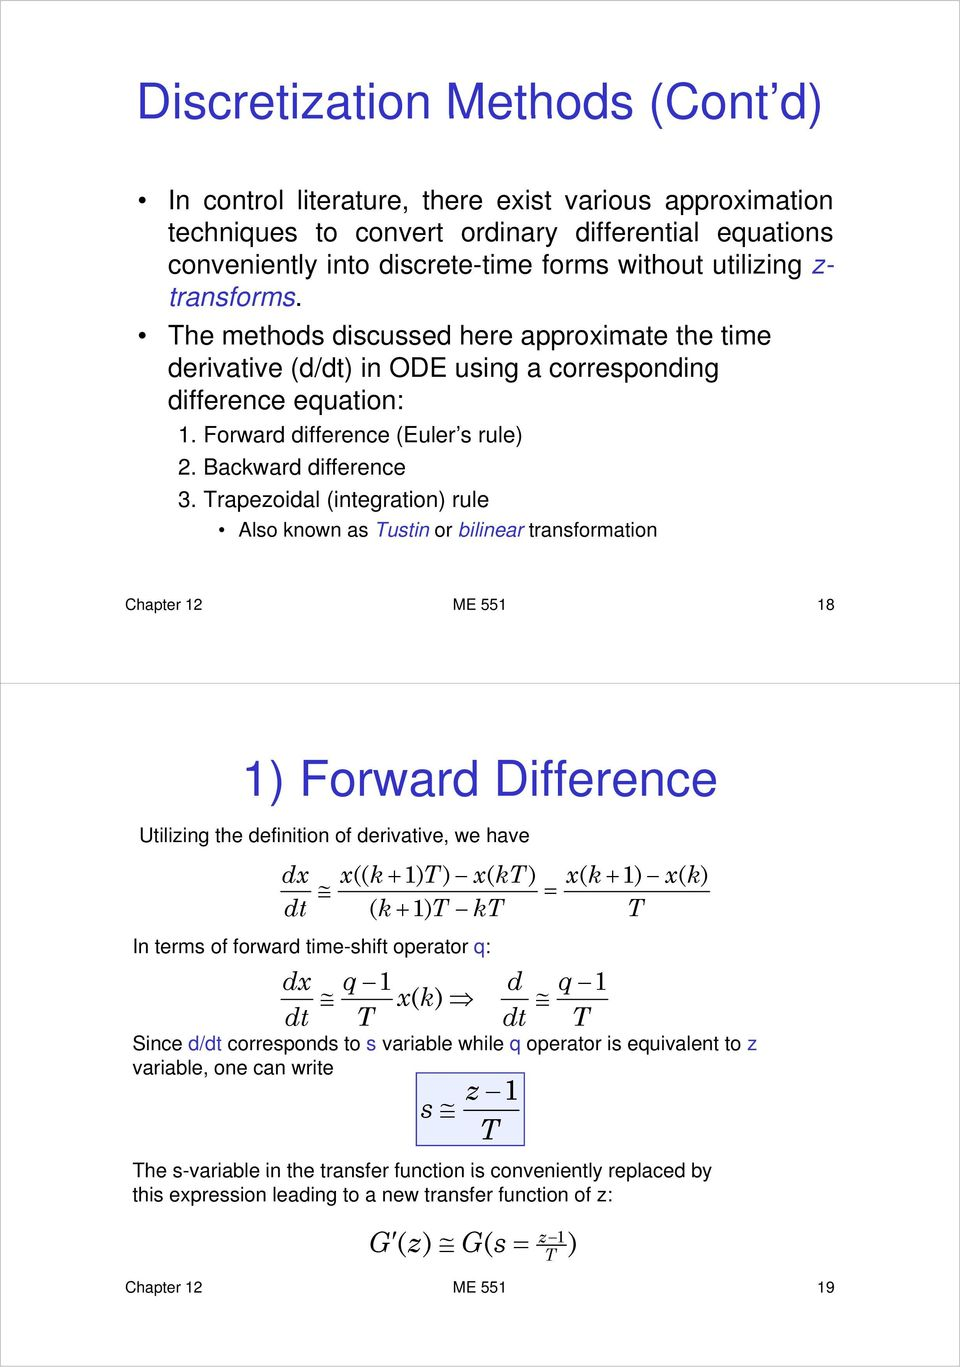 rapezoidal integration ti rule Also known as ustin or bilinear transformation Chapter 12 ME 551 18 1 Forward Difference Utilizing the definition of derivative, we have d k 1 k k 1 k = dt k 1 k In